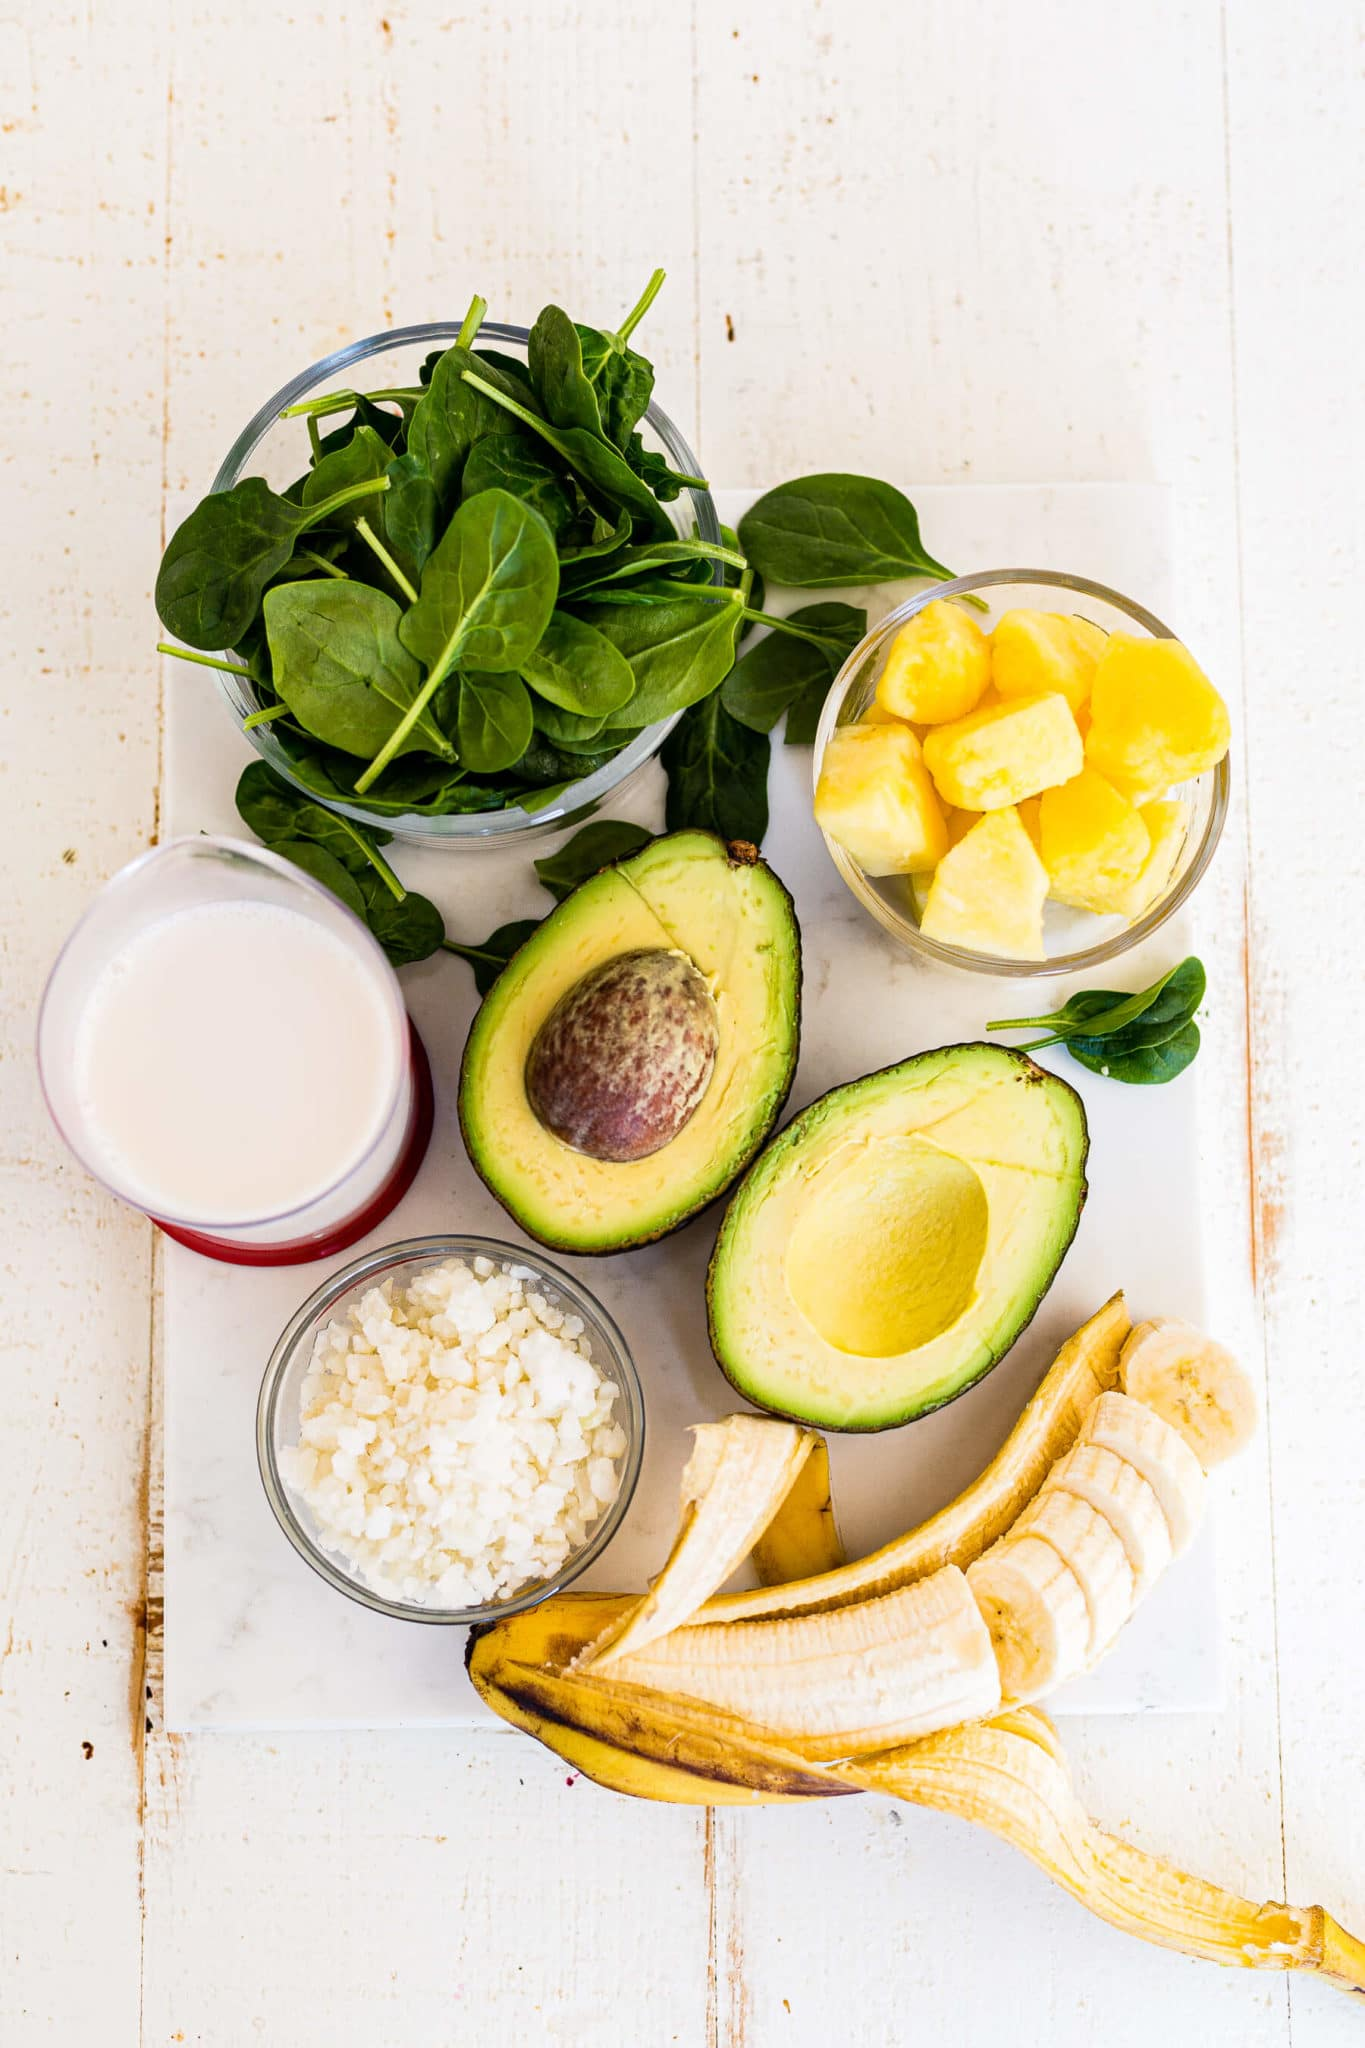 banana, avocado, pinapple, almond milk and spinach on a white table